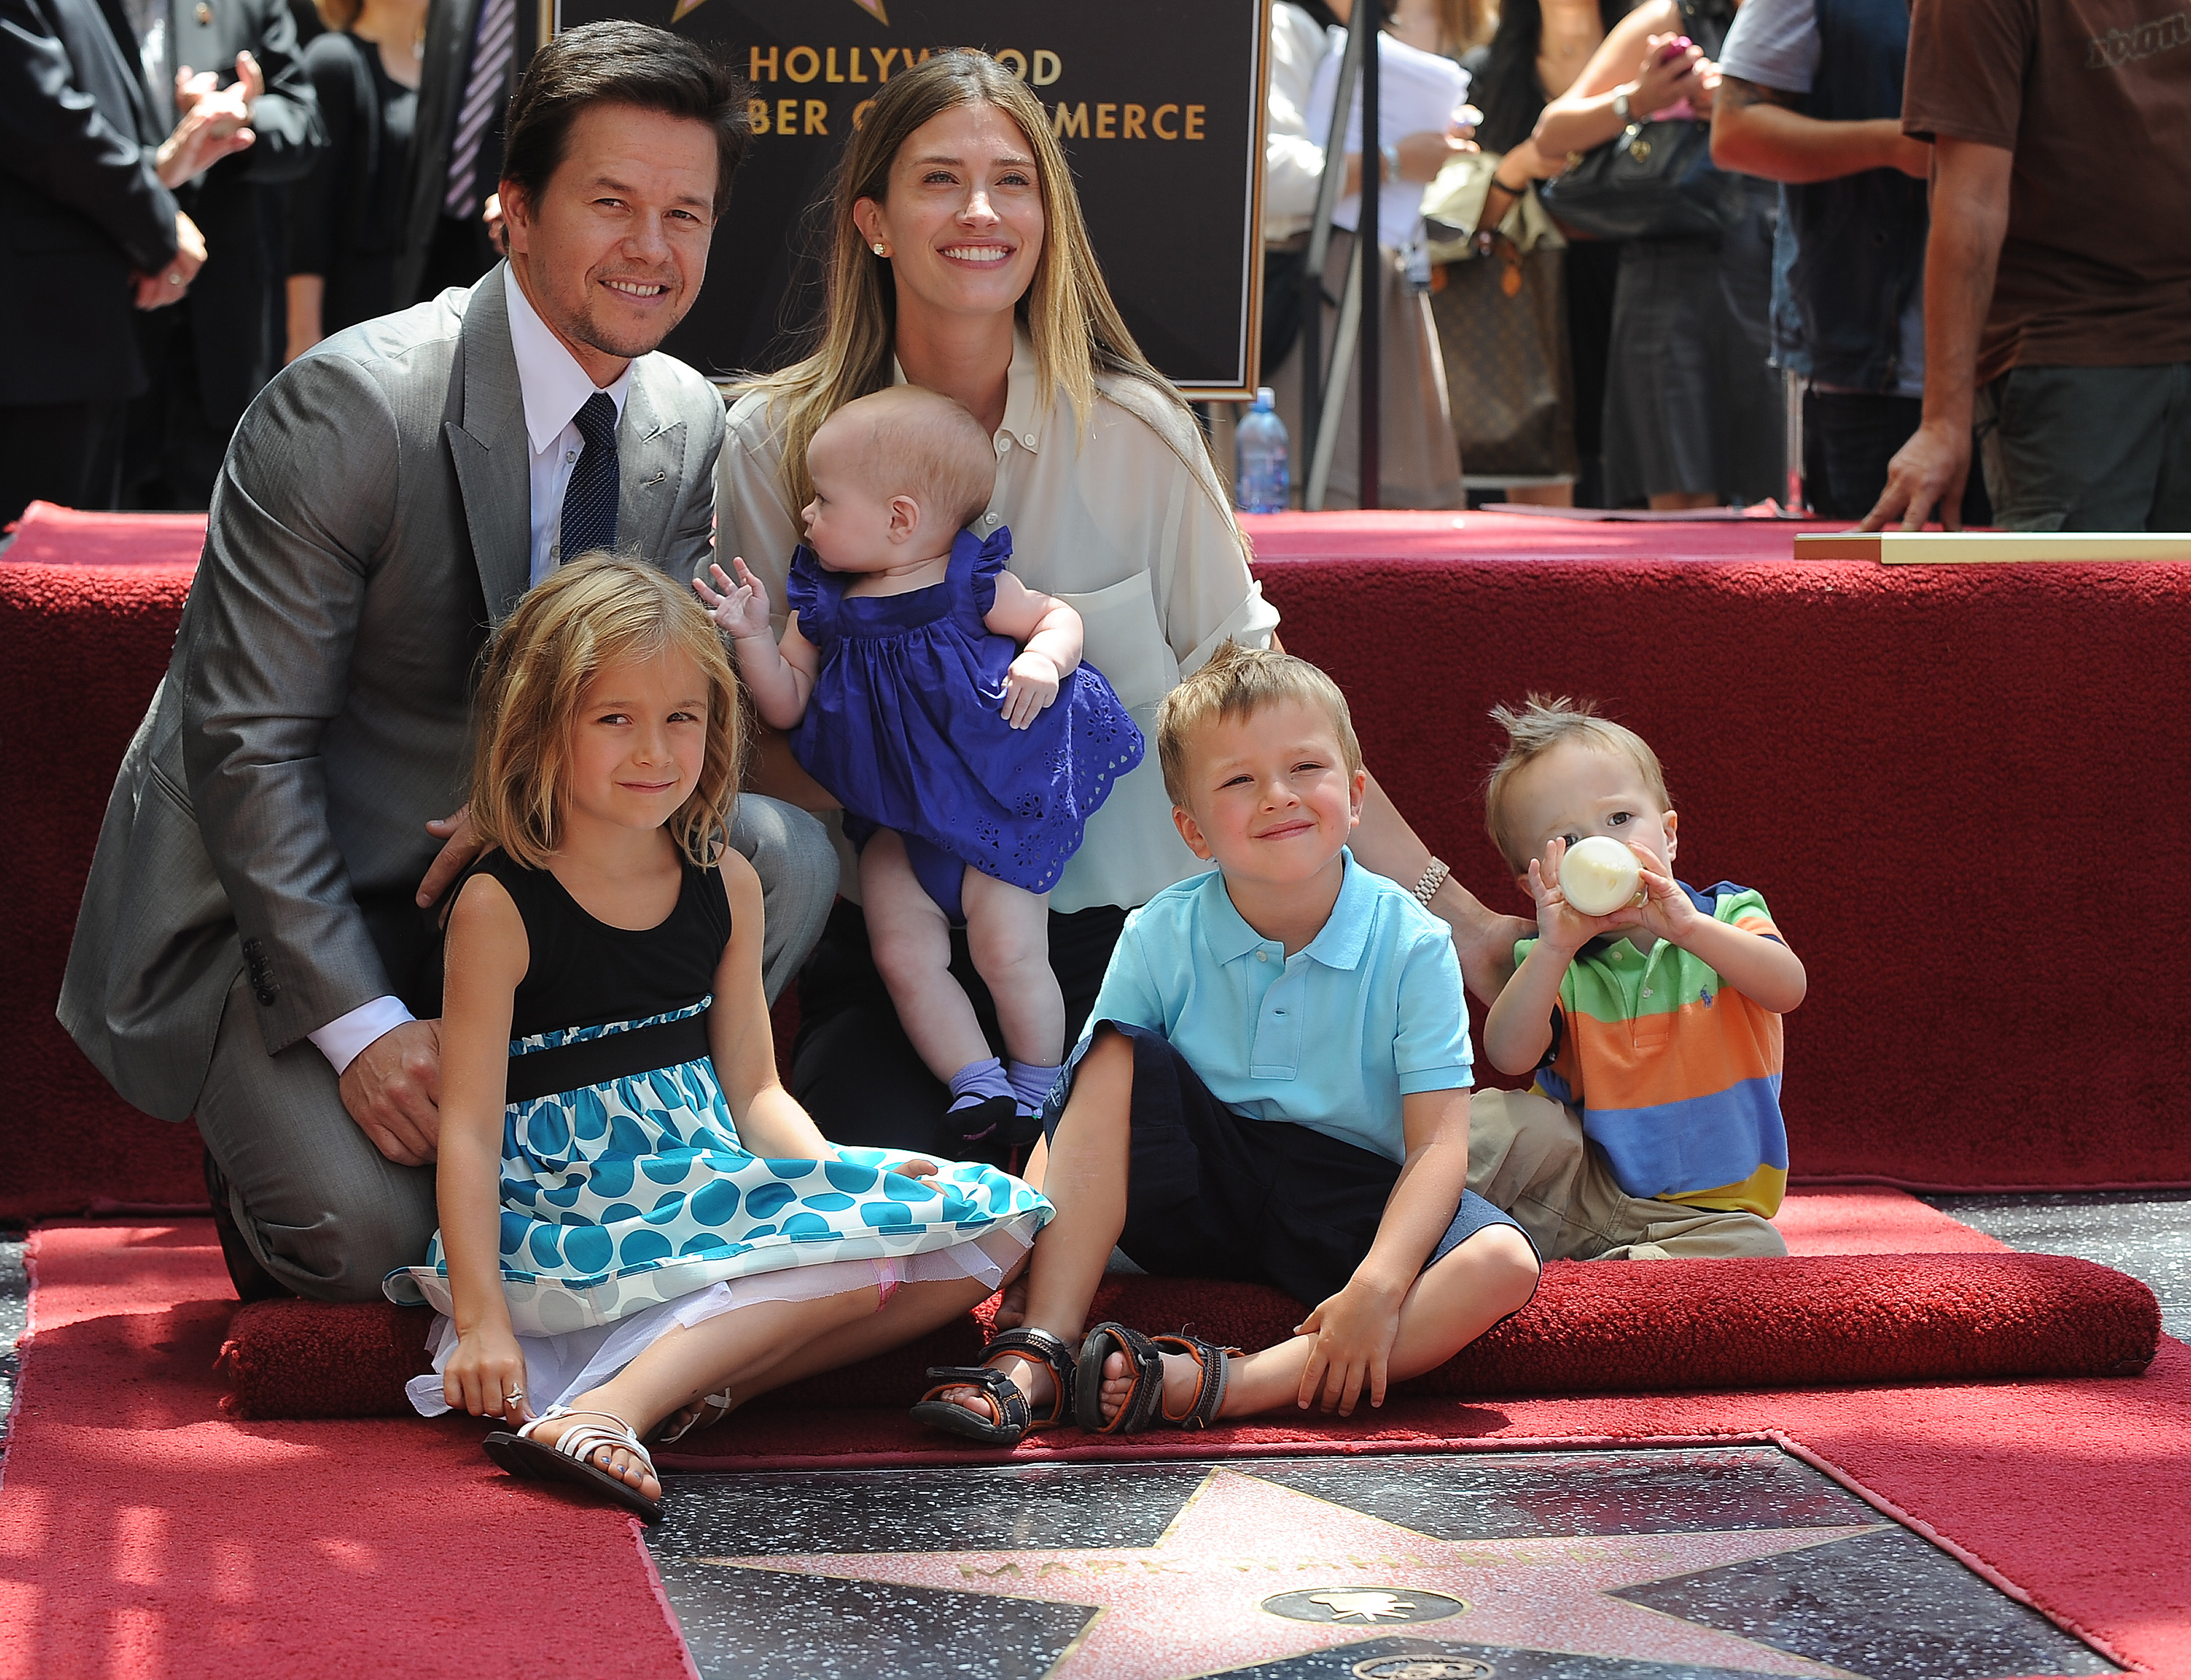 Mark Wahlberg poses with his family as he is honored with a star on the Hollywood Walk of Fame. (Getty)